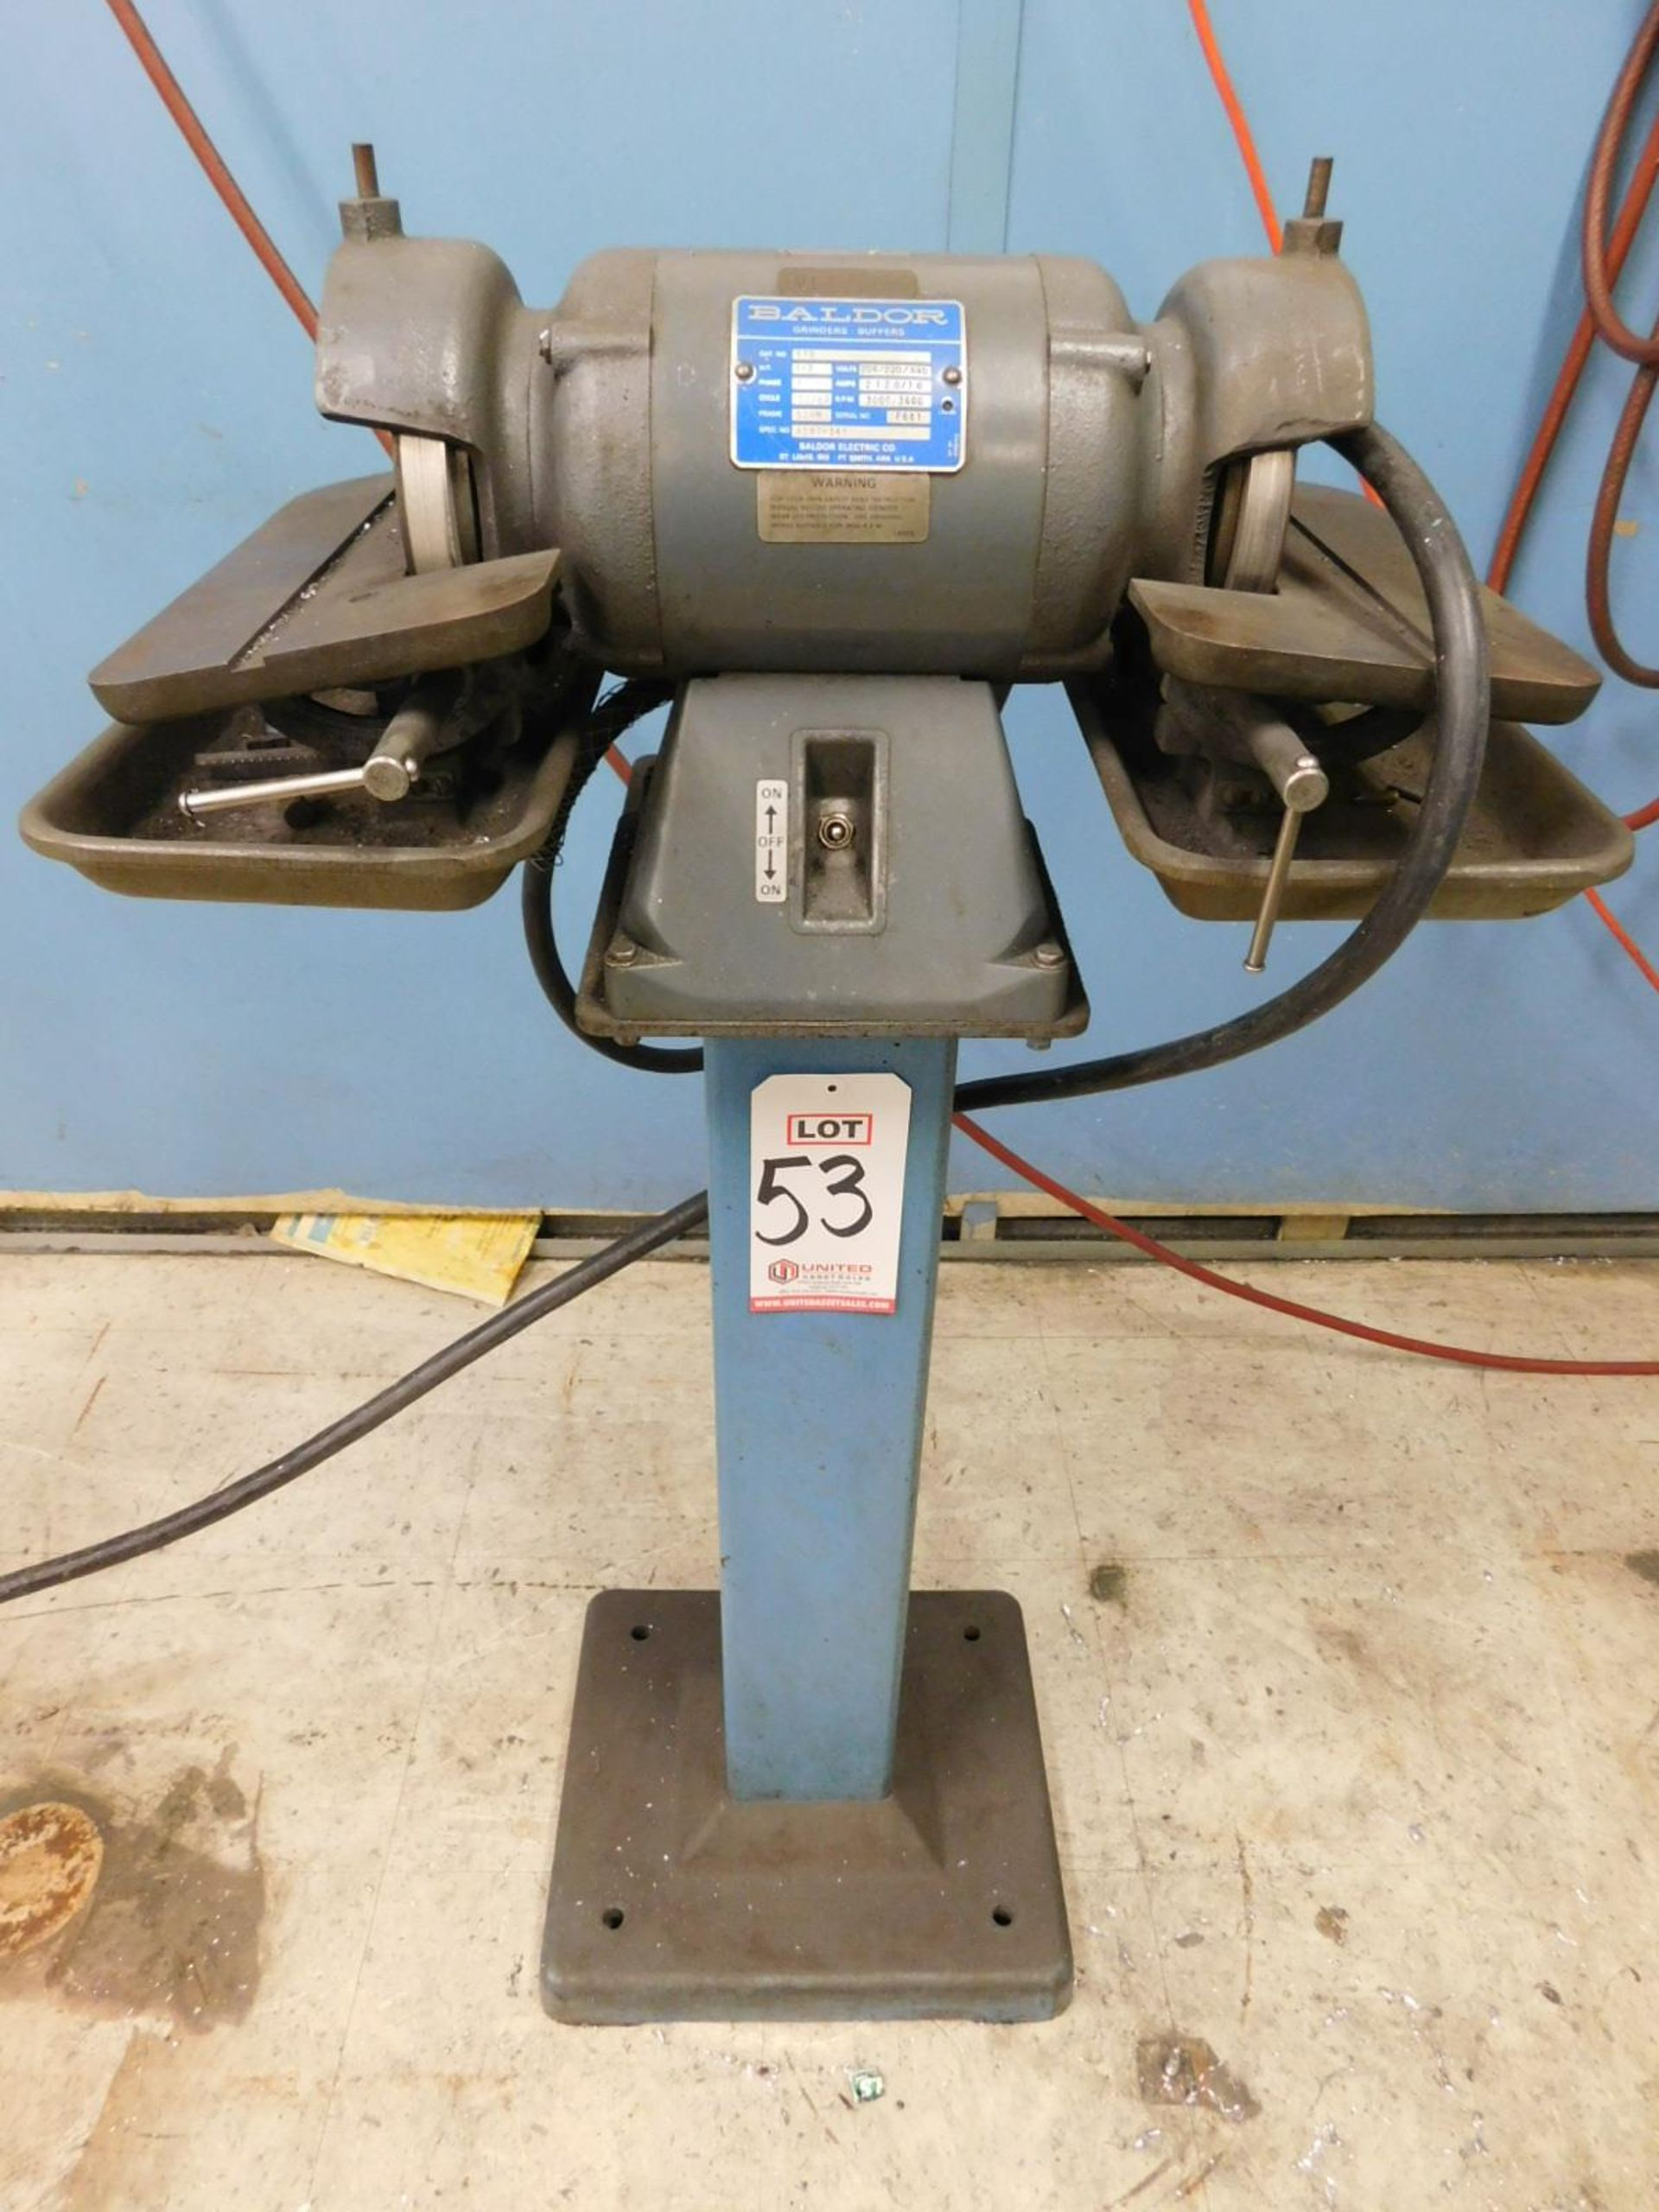 "Lot 53 - BALDOR 510 6"" TOOL GRINDER, 1/2 HP, 3-PHASE, 208/220/440V, S/N F681, W/ STAND"